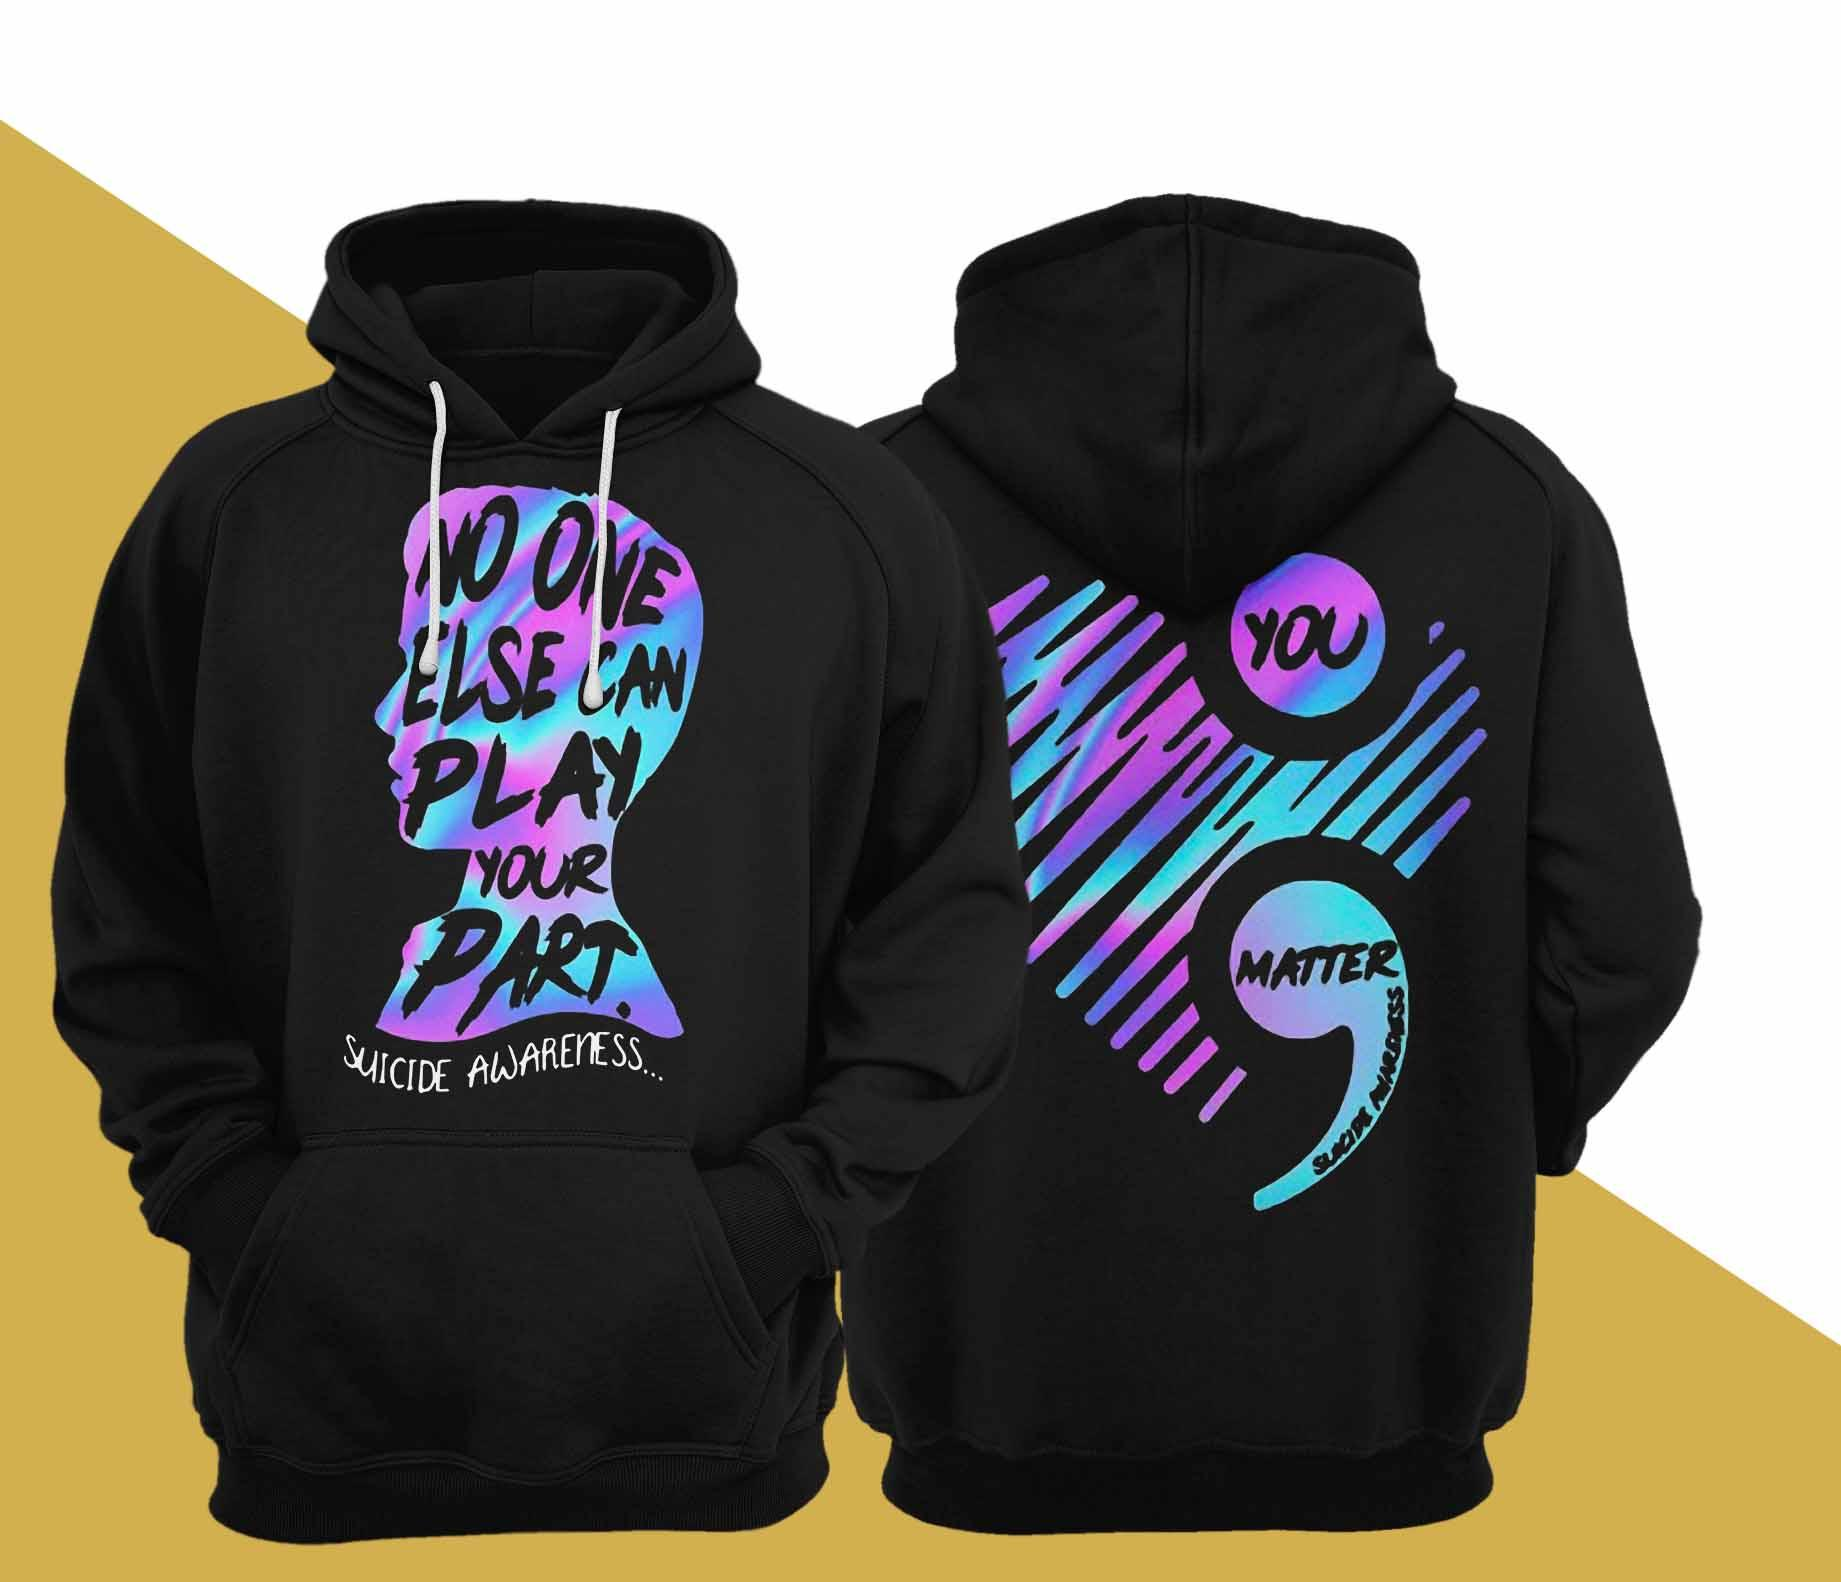 No One Else Can Play Your Part Suicide Awareness Hoodie